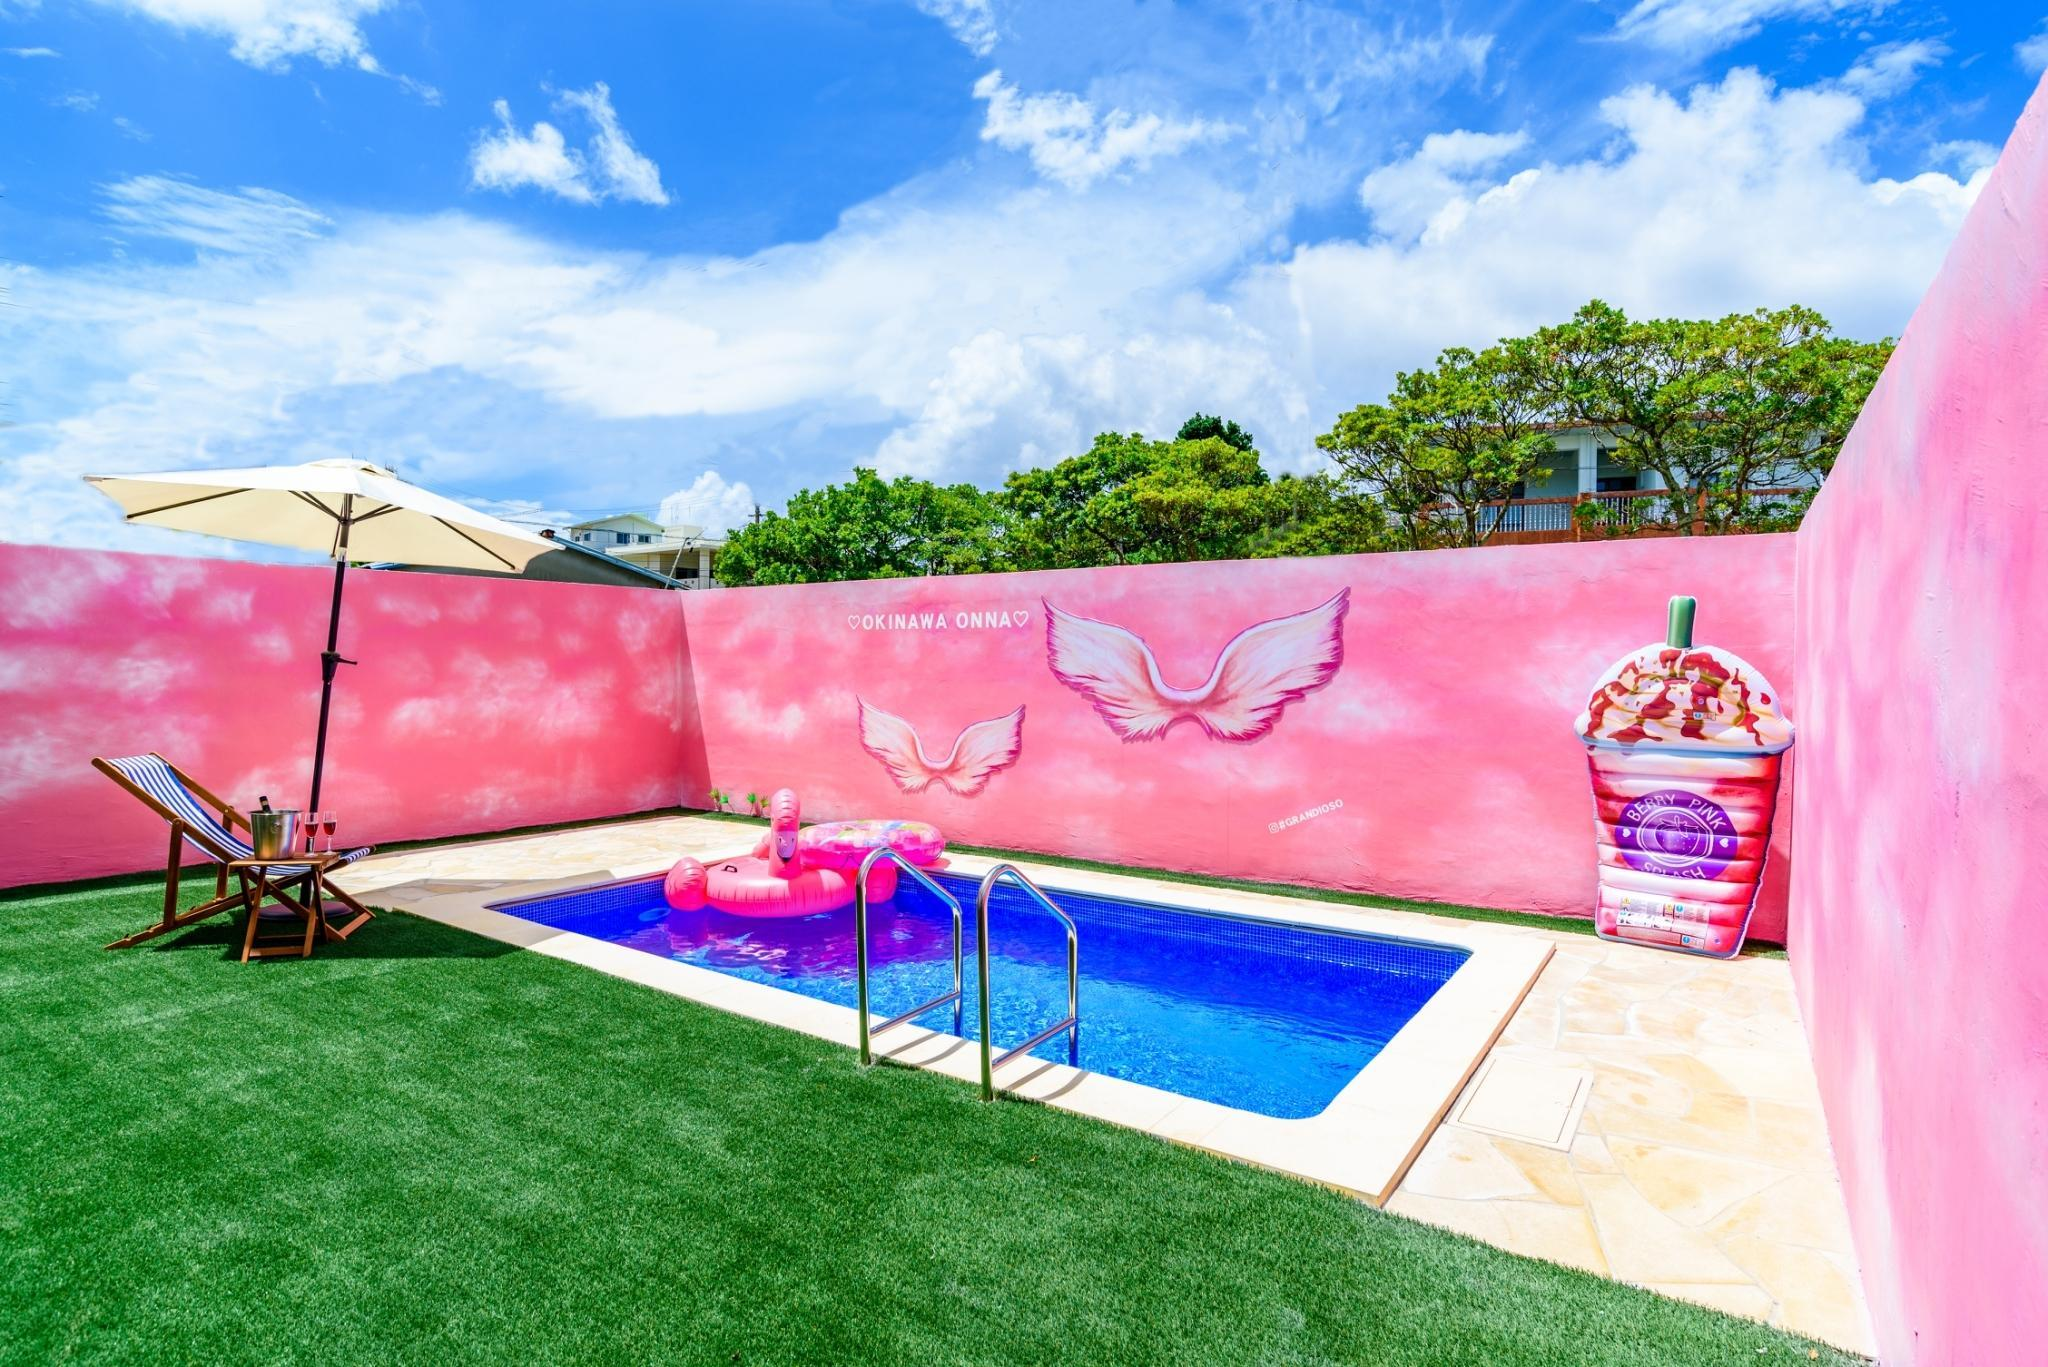 91 Private Pool Art Wall 3BR  Baby Max14ppl B